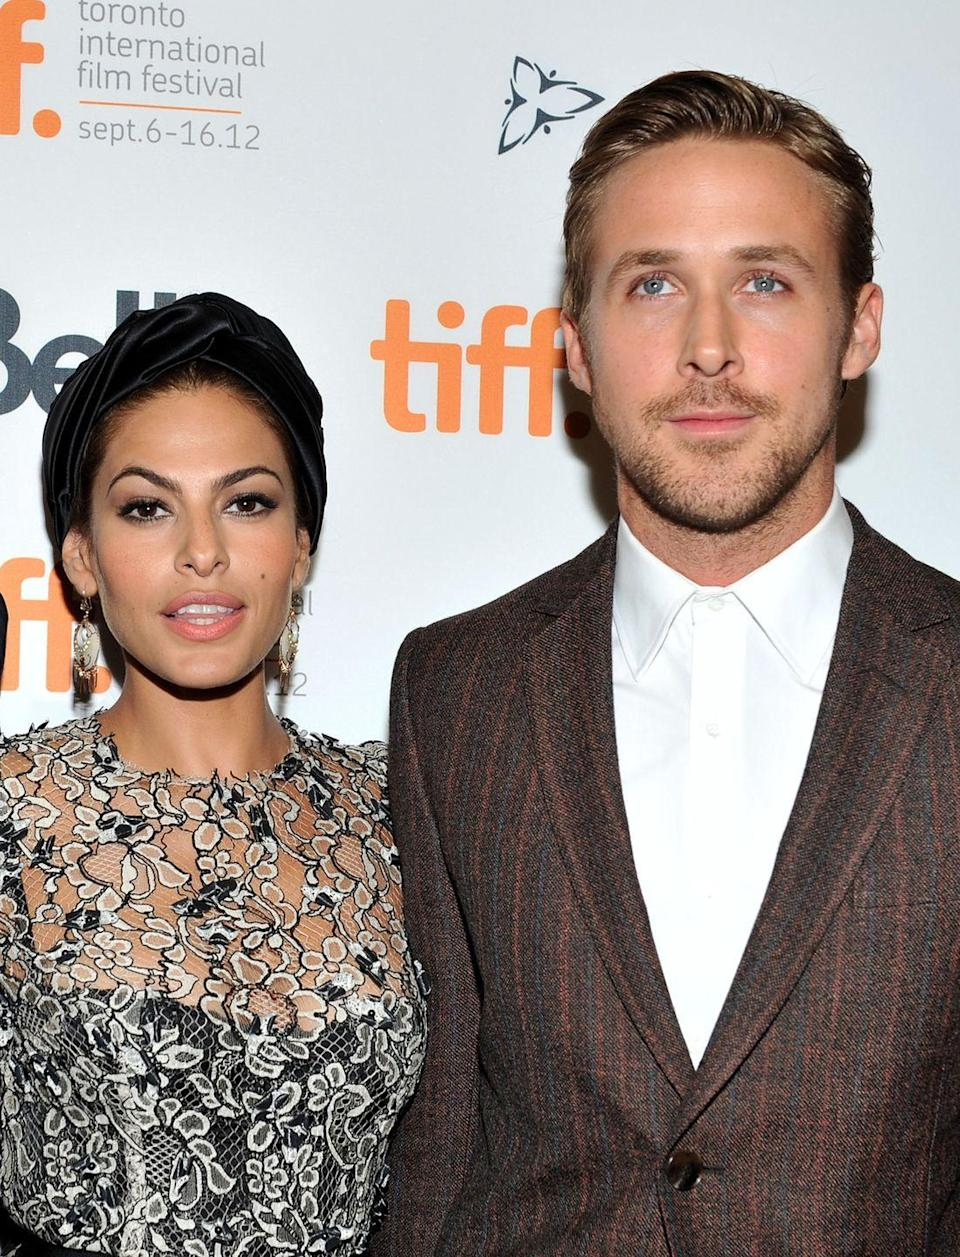 <p>Ryan Gosling and Eva Mendes met on the set of <em>The Place Beyond the Pines </em>in 2011 and started dating. Since then, the partners have welcomed two children together: Daughter Esmeralda Amada Gosling who was born in 2014 and daughter Amada Lee Gosling in 2016.</p>